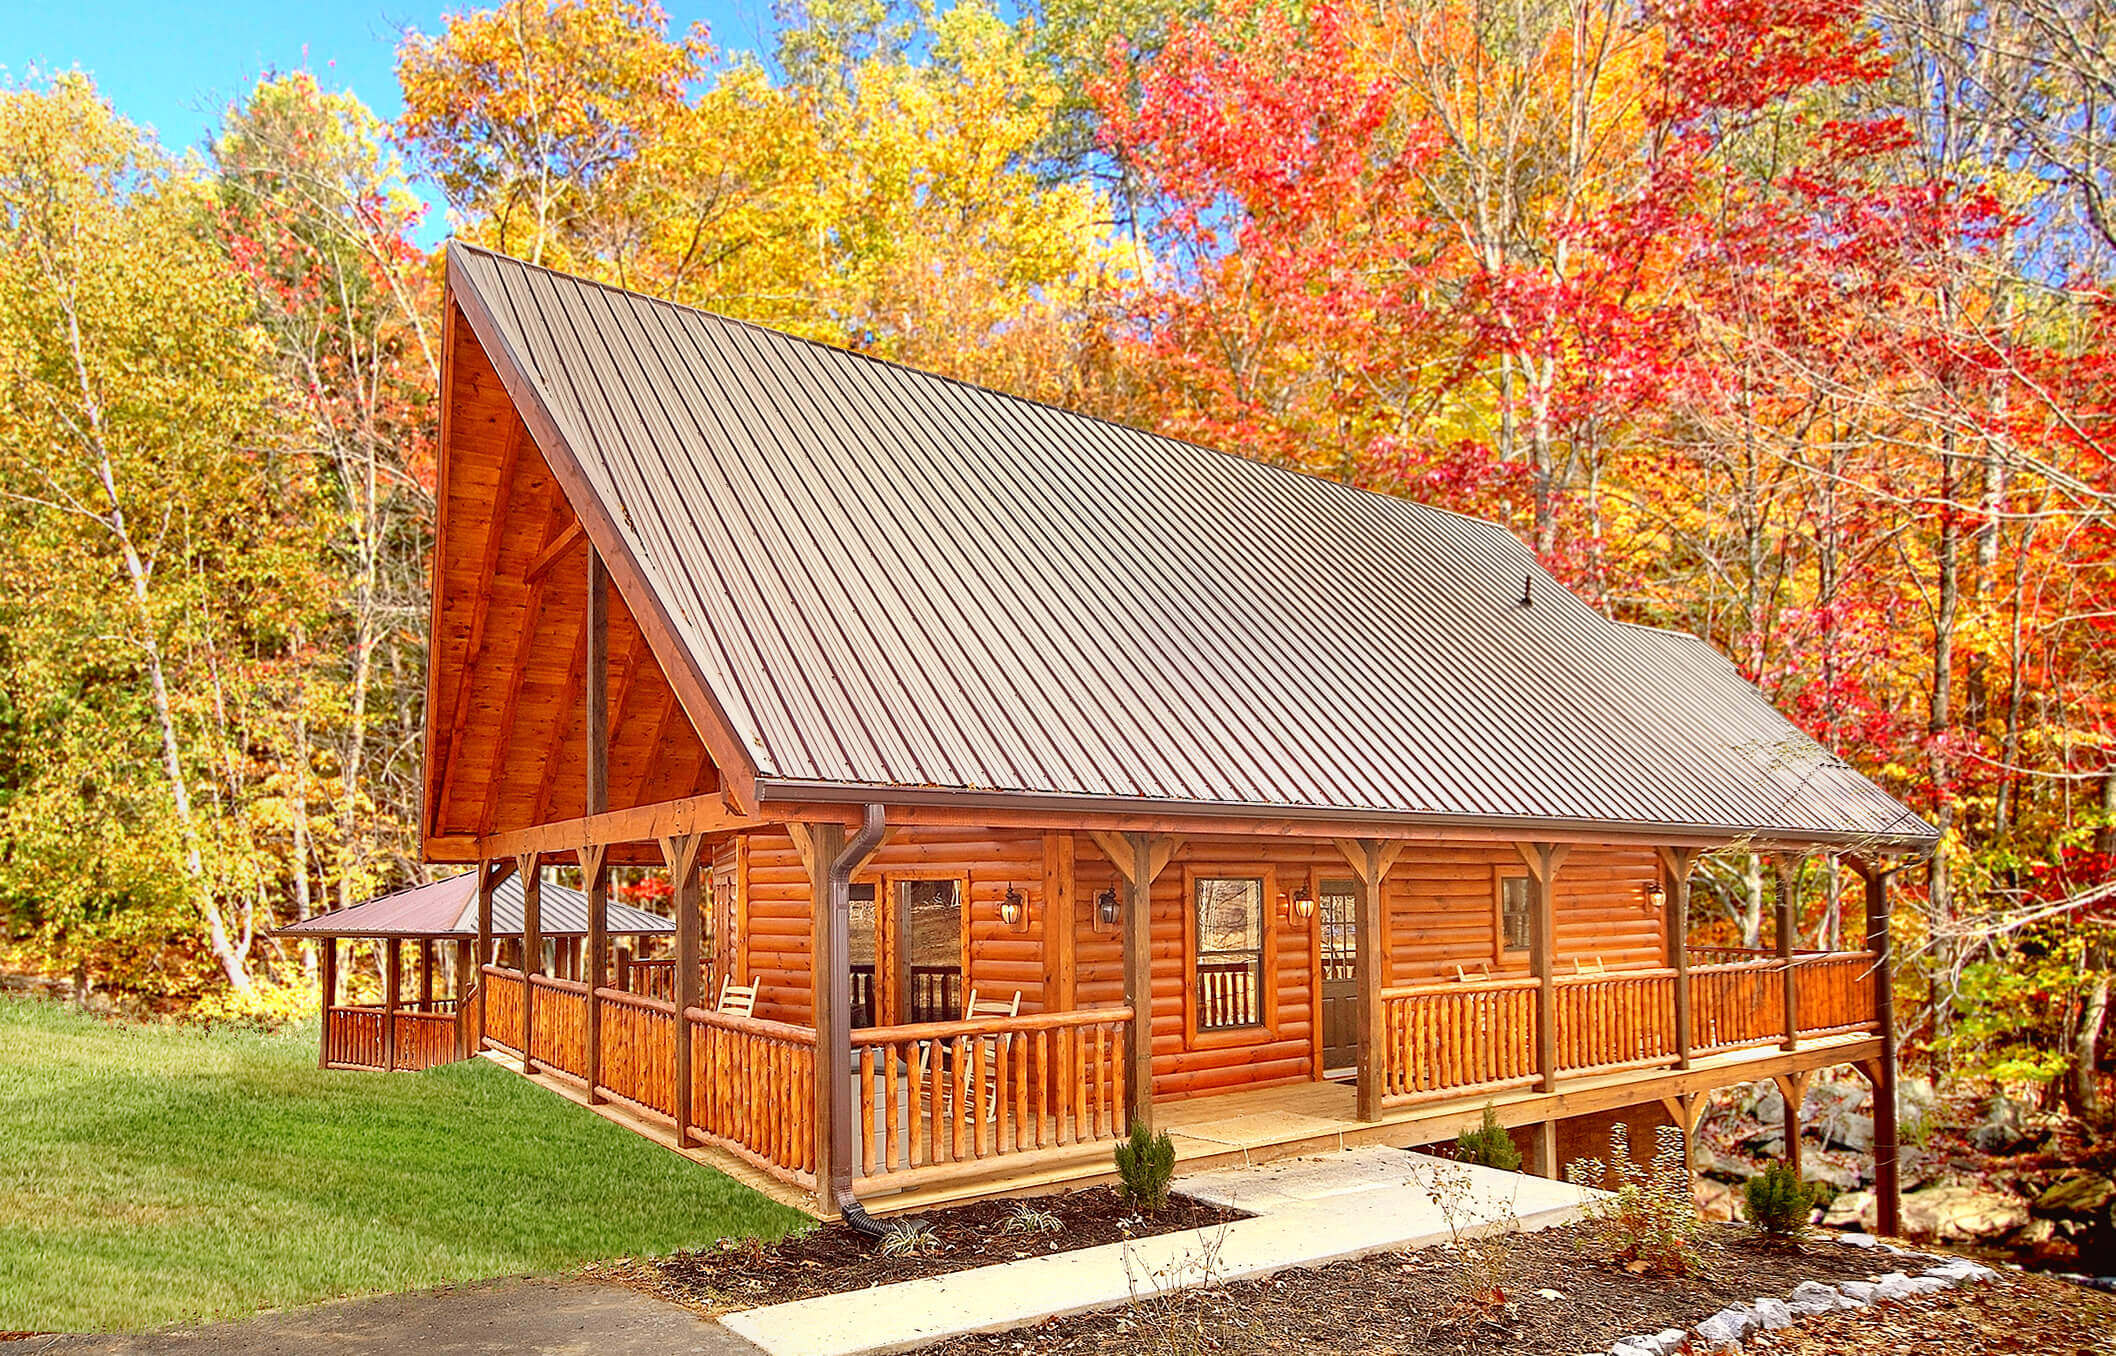 tubs outdoors vacation camping cabins luxurycabins in hot bogalusa with louisiana pin